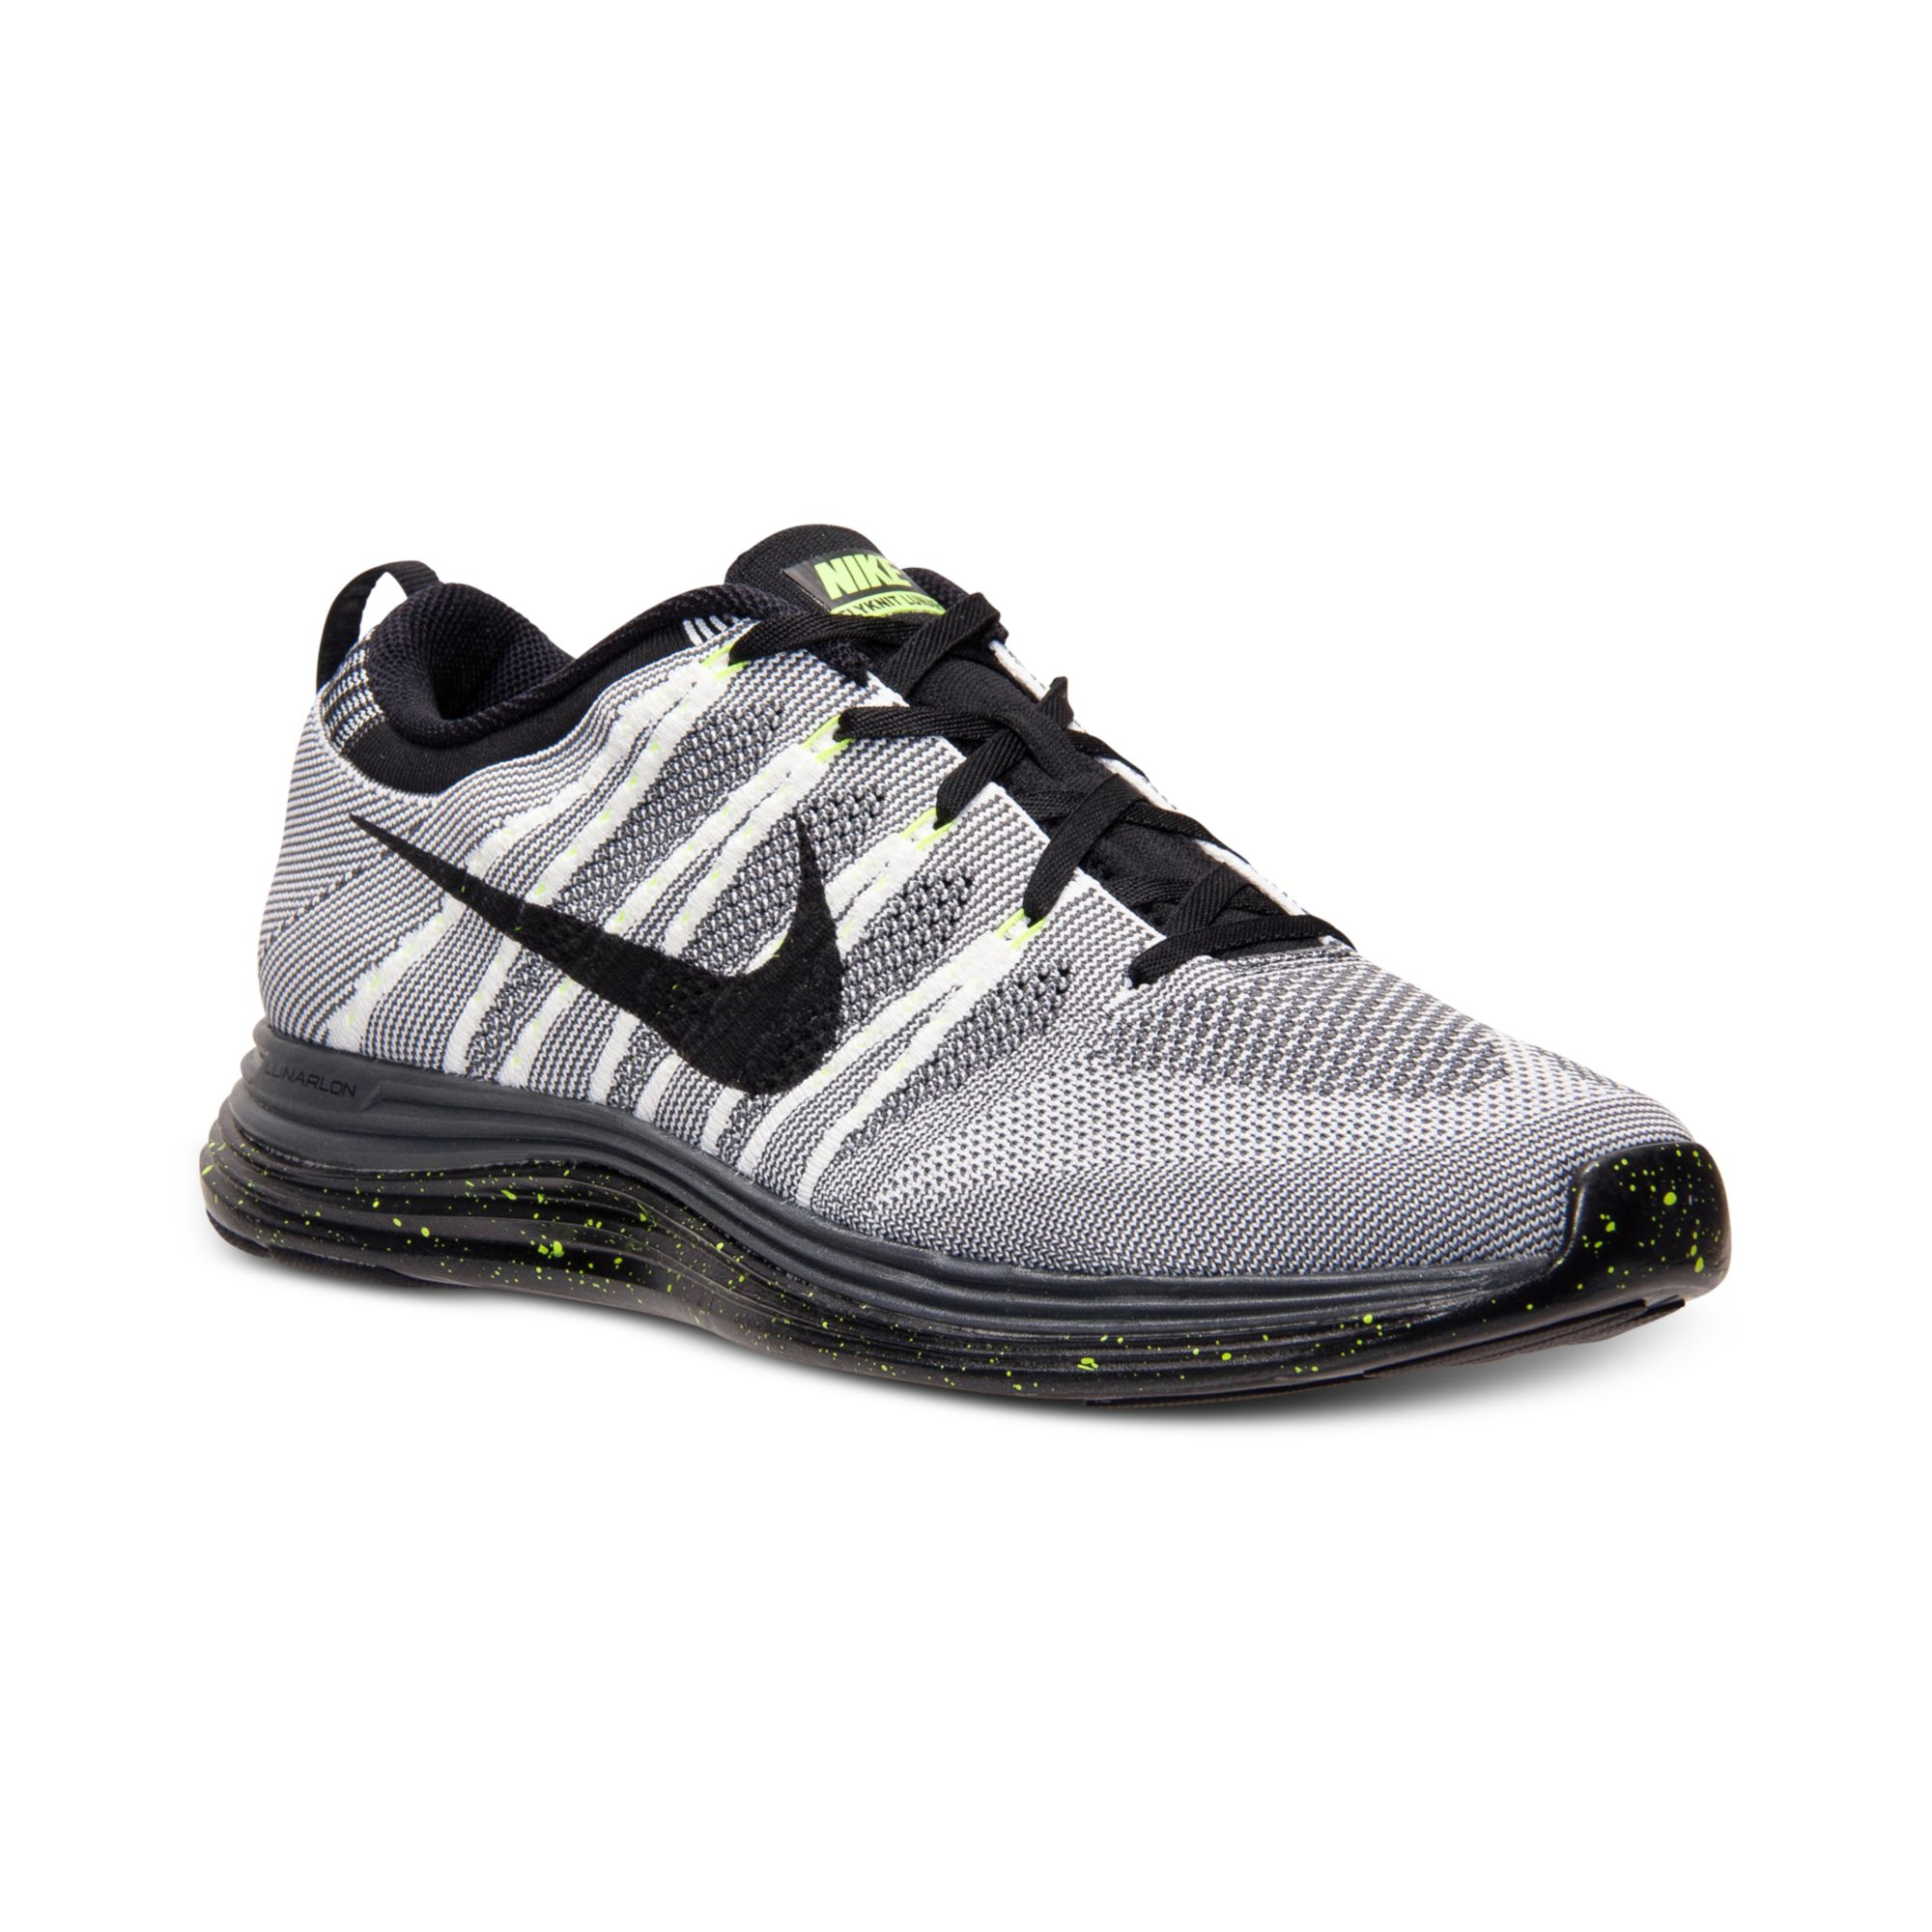 Dkny Mens Athletic Shoes